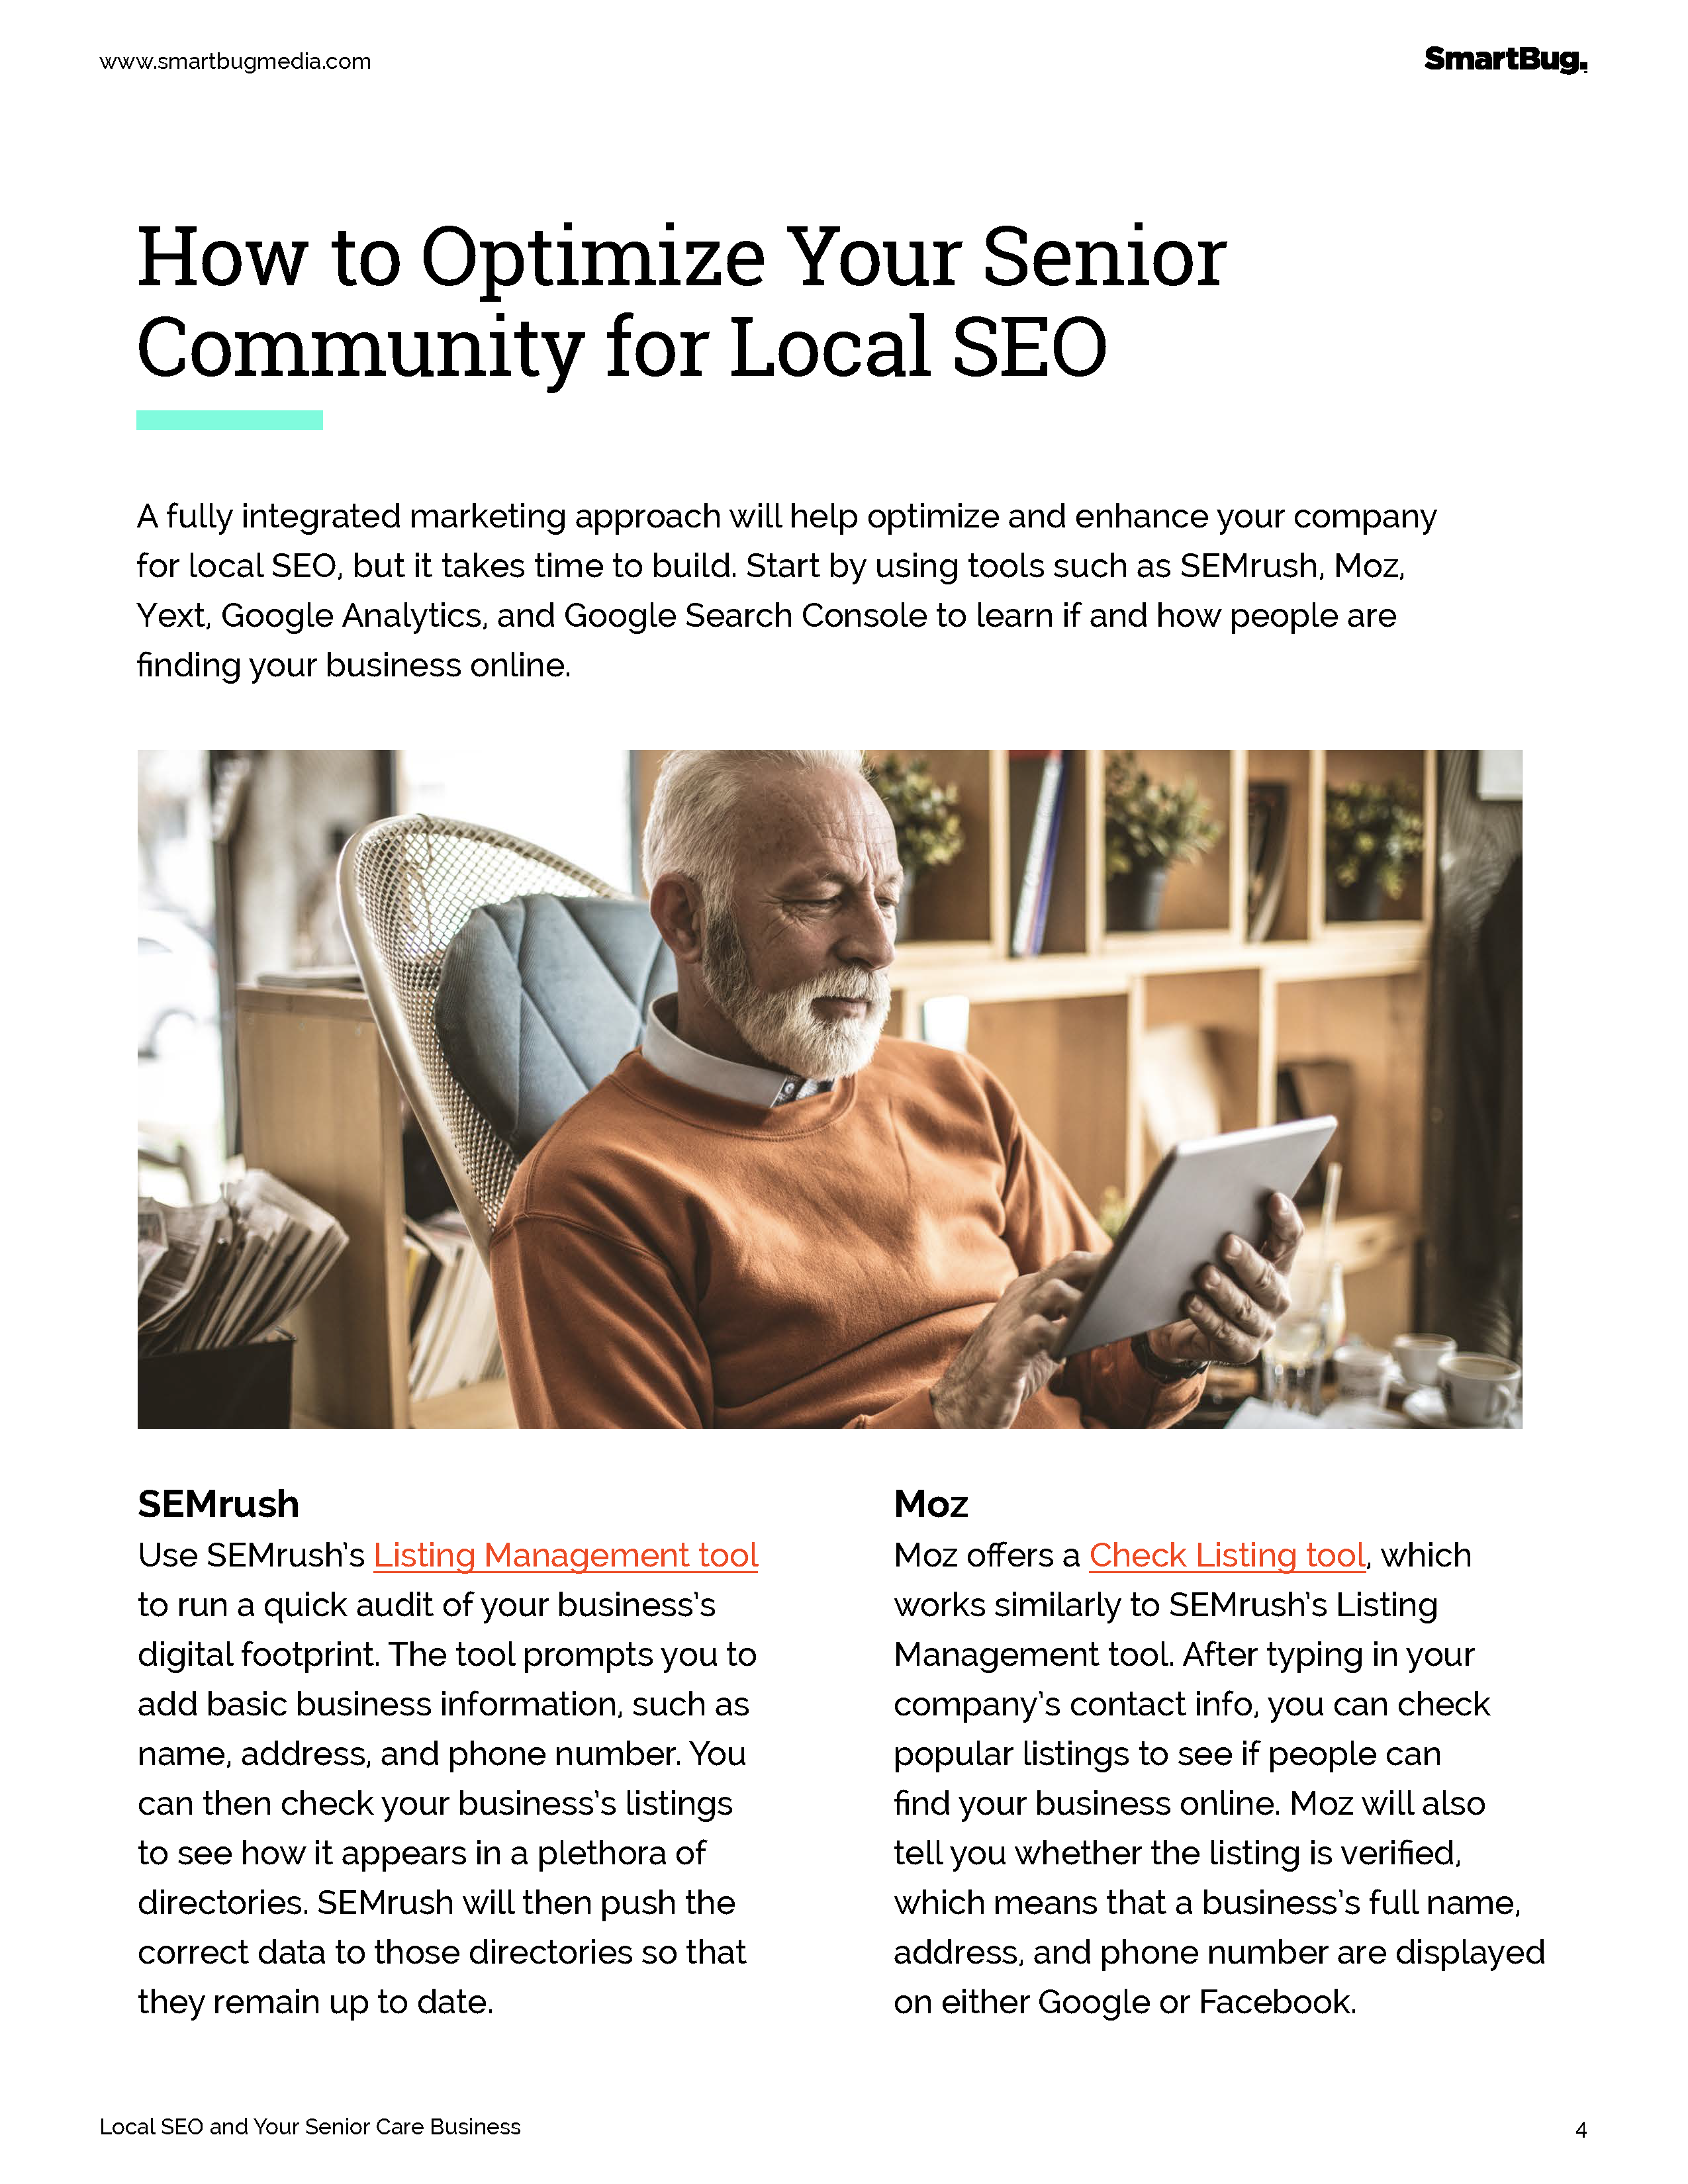 Local SEO and Your Senior Care Business_Page_04